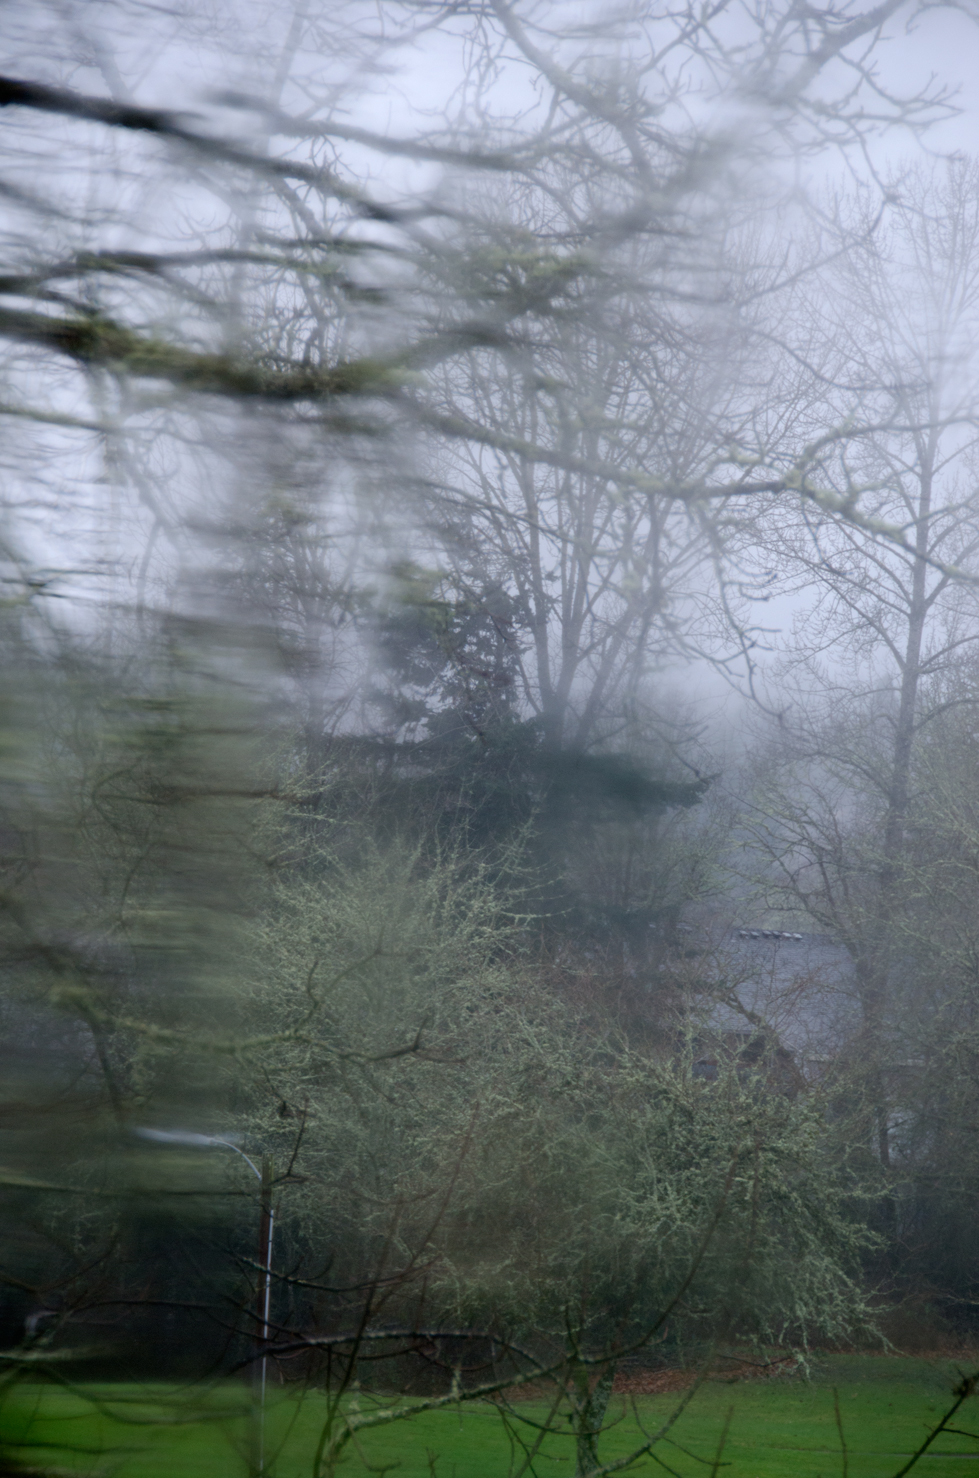 looking at trees through a blurred window